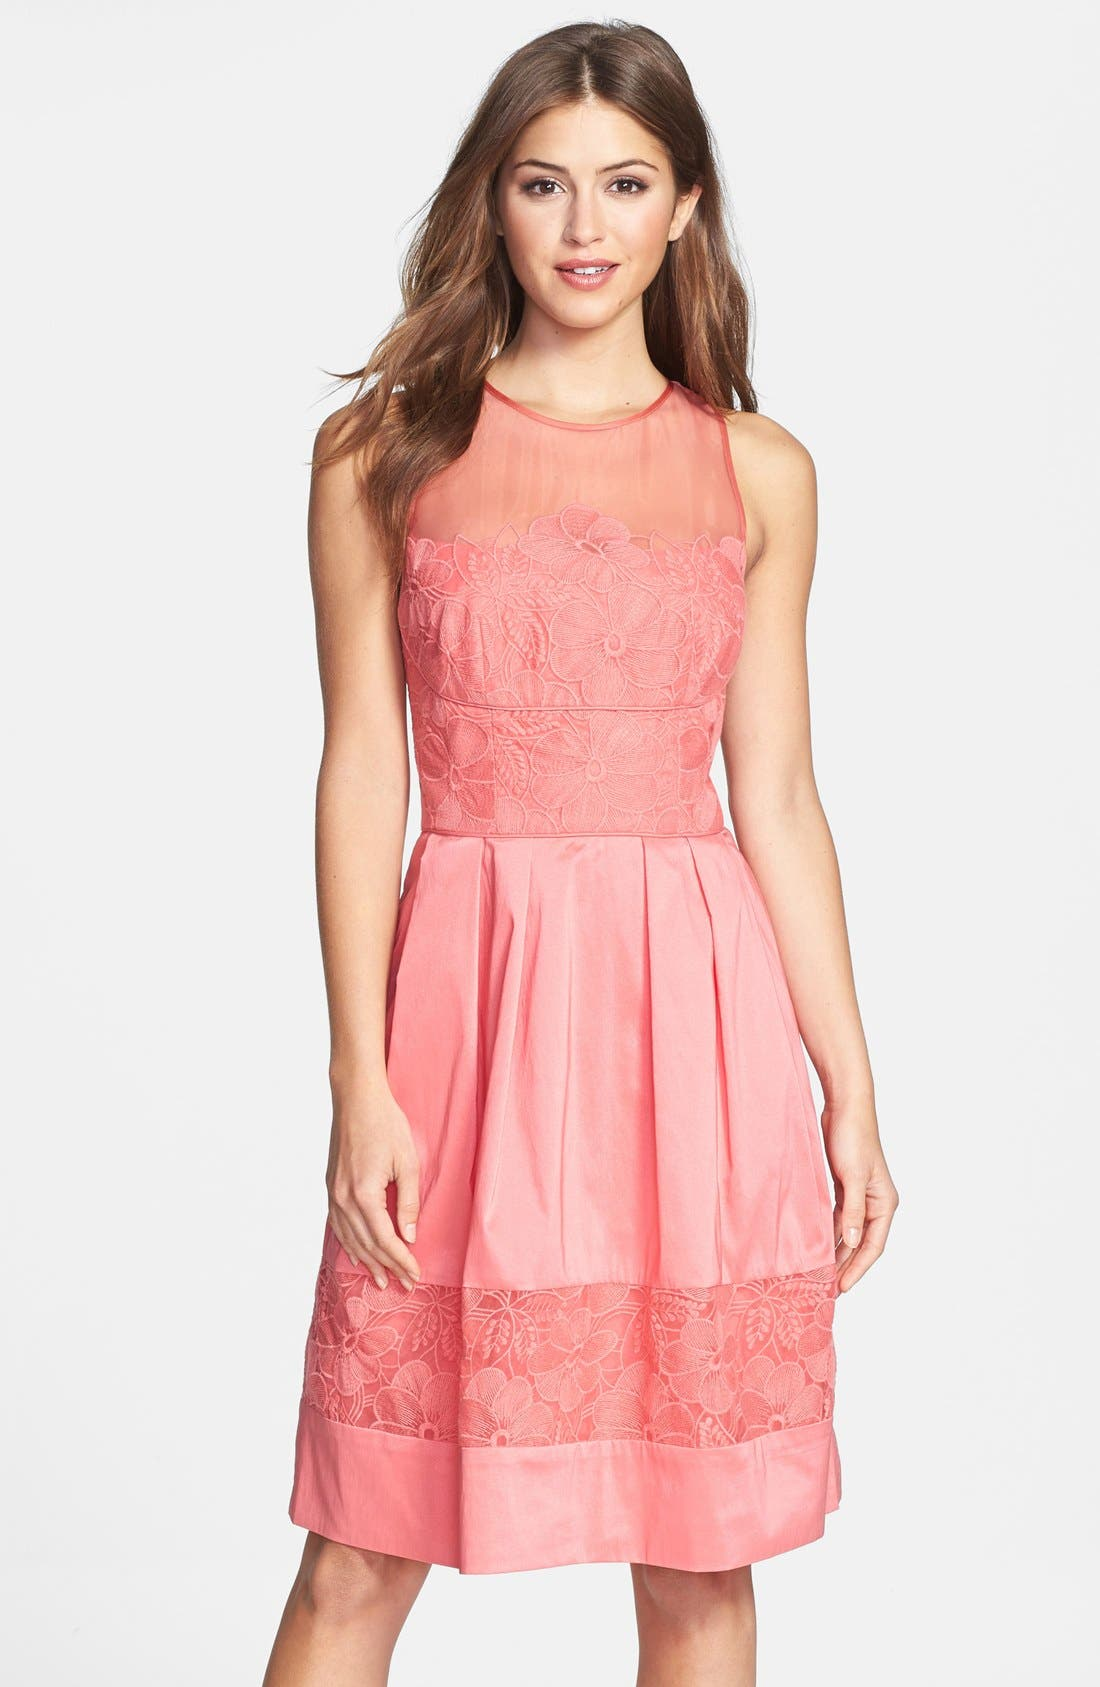 Alternate Image 1 Selected - Maggy London Embroidered Detail Taffeta Fit & Flare Dress (Petite)